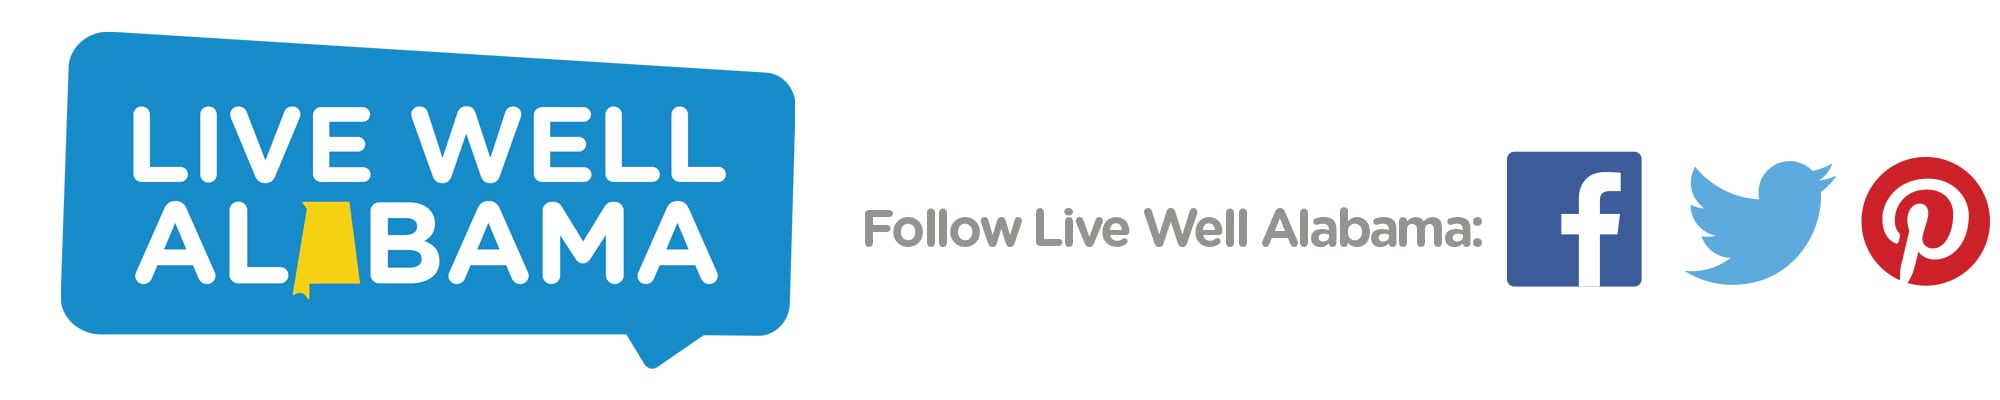 Live Well Alabama logo. Blue text bubble with white letters.